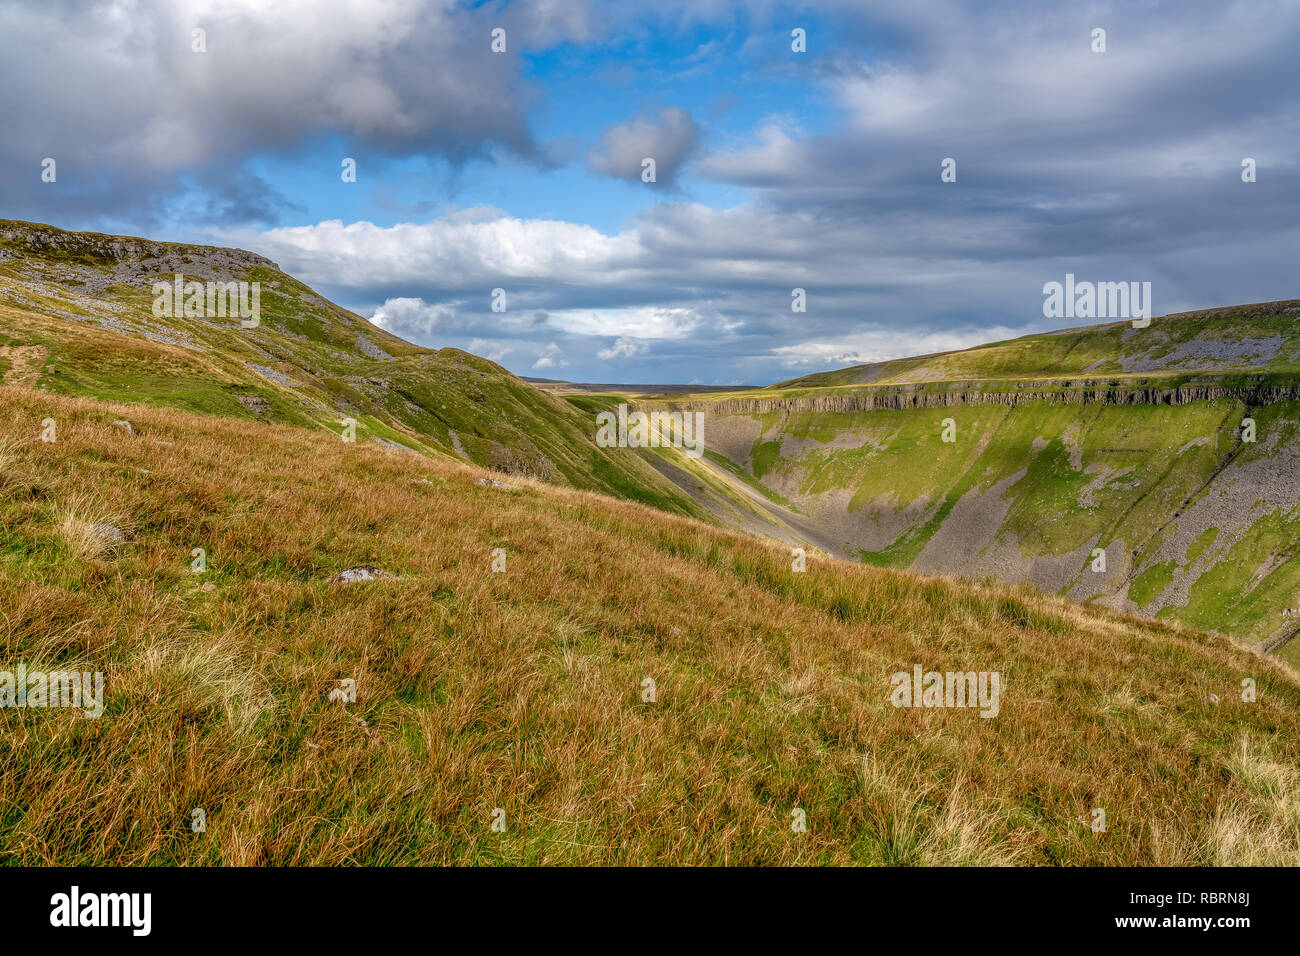 North Pennines landscape at the High Cup Nick in Cumbria, England, UK - Stock Image